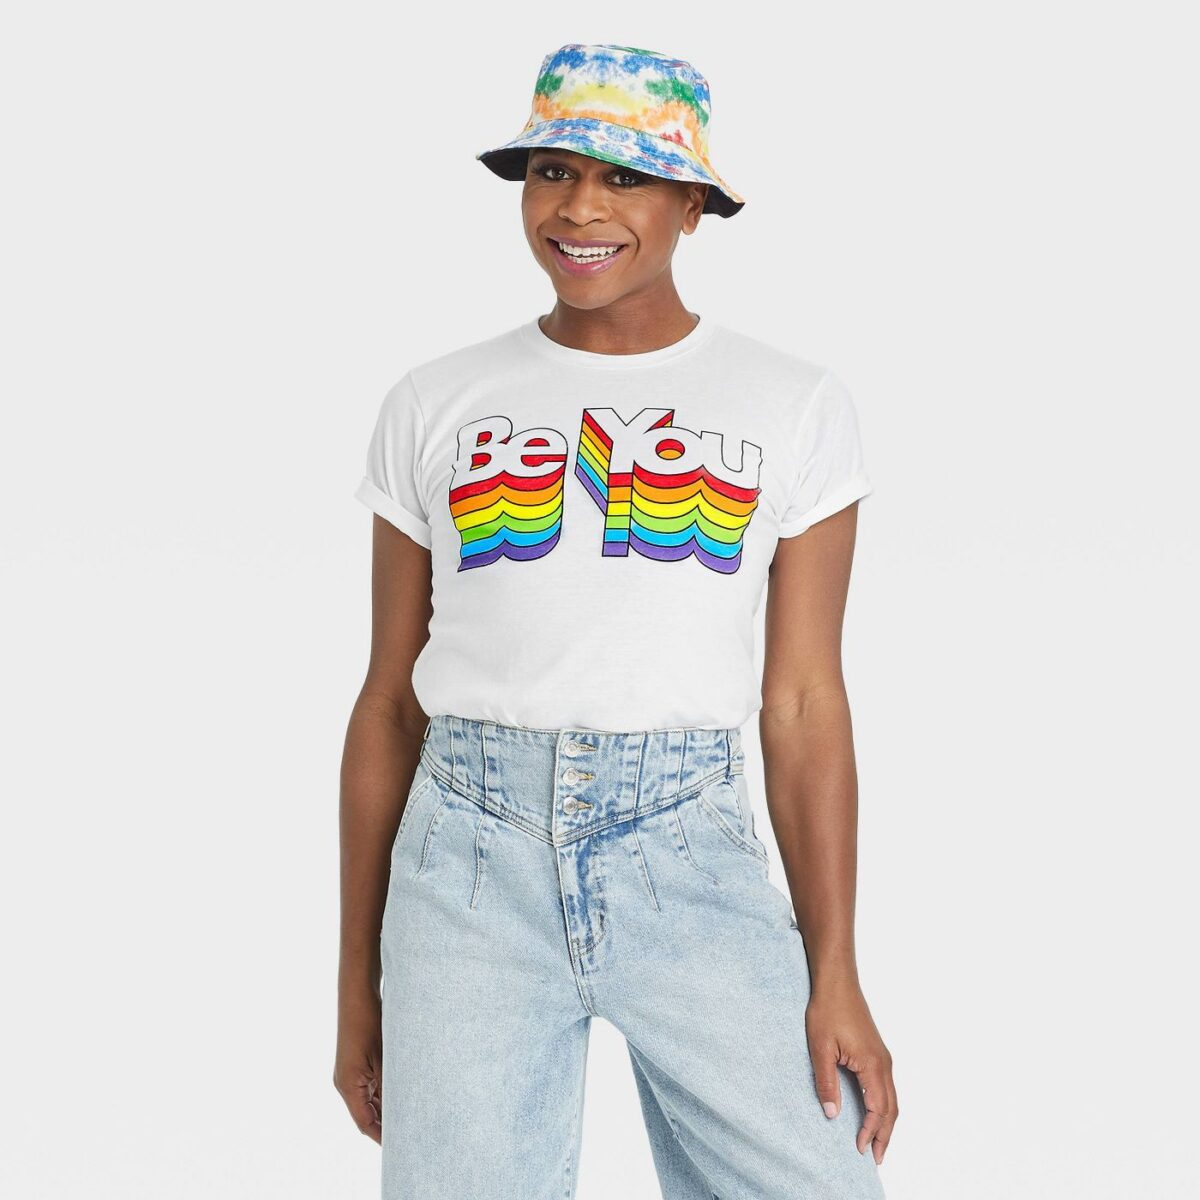 Pride Gender Inclusive Adult 'Be You' Short Sleeve Graphic T-Shirt - White Pride Gifts